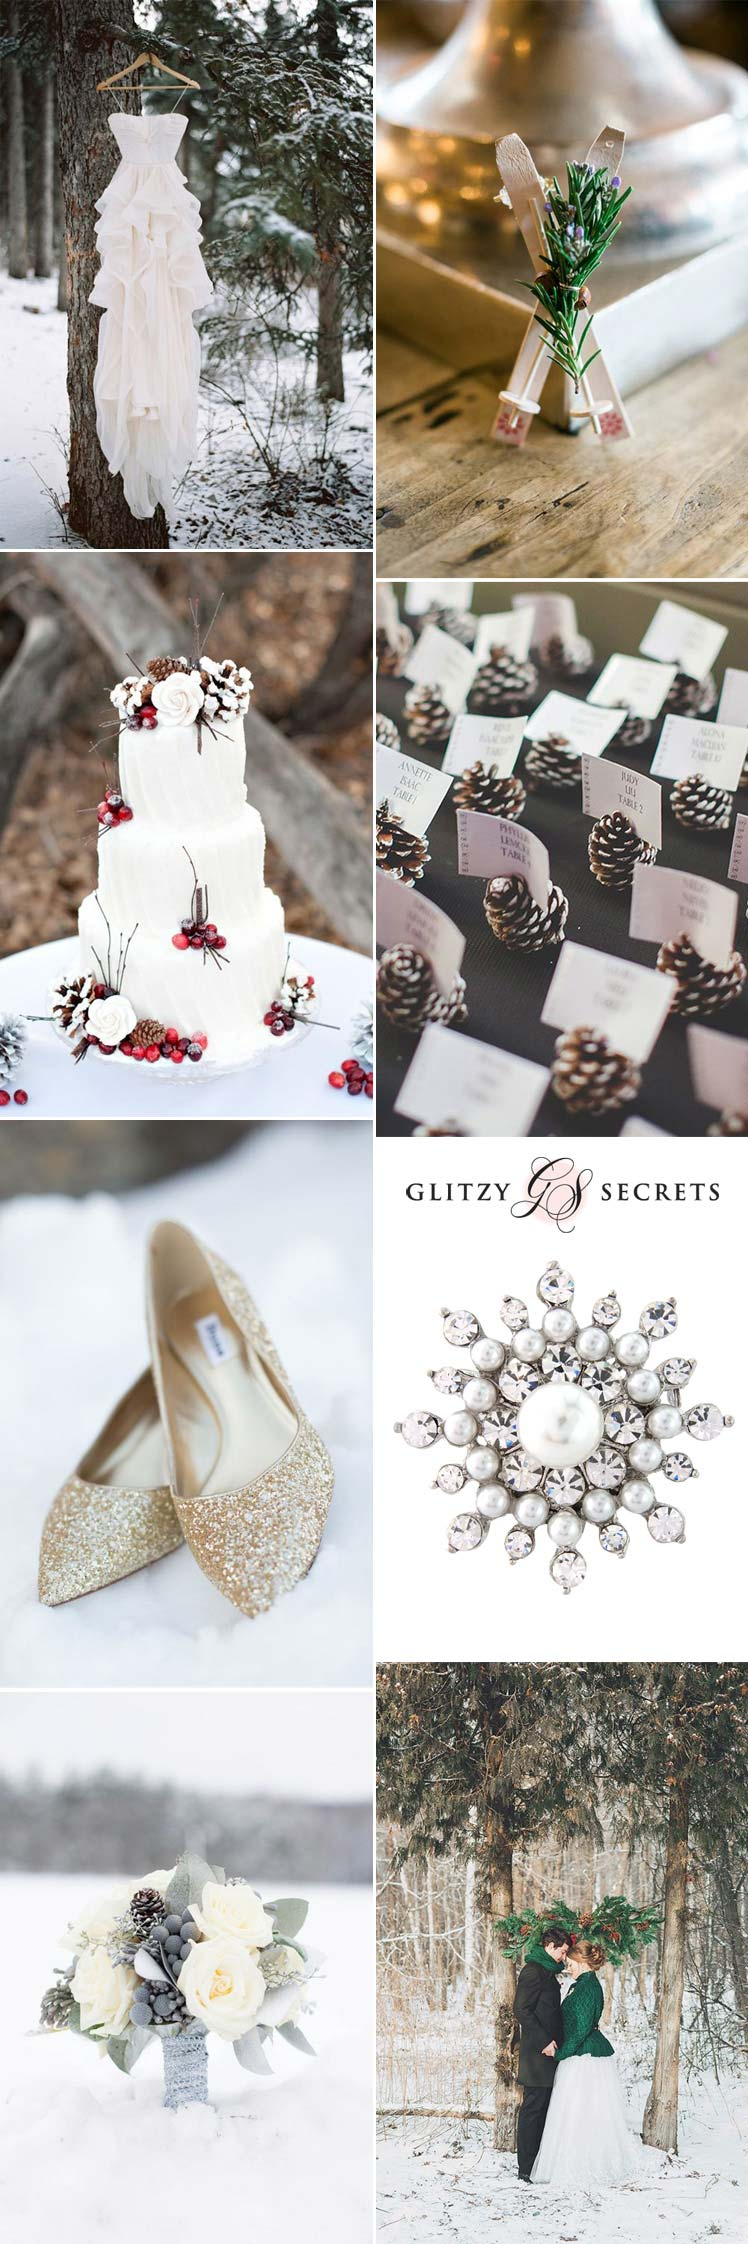 Snow wedding inspiration for your winter day